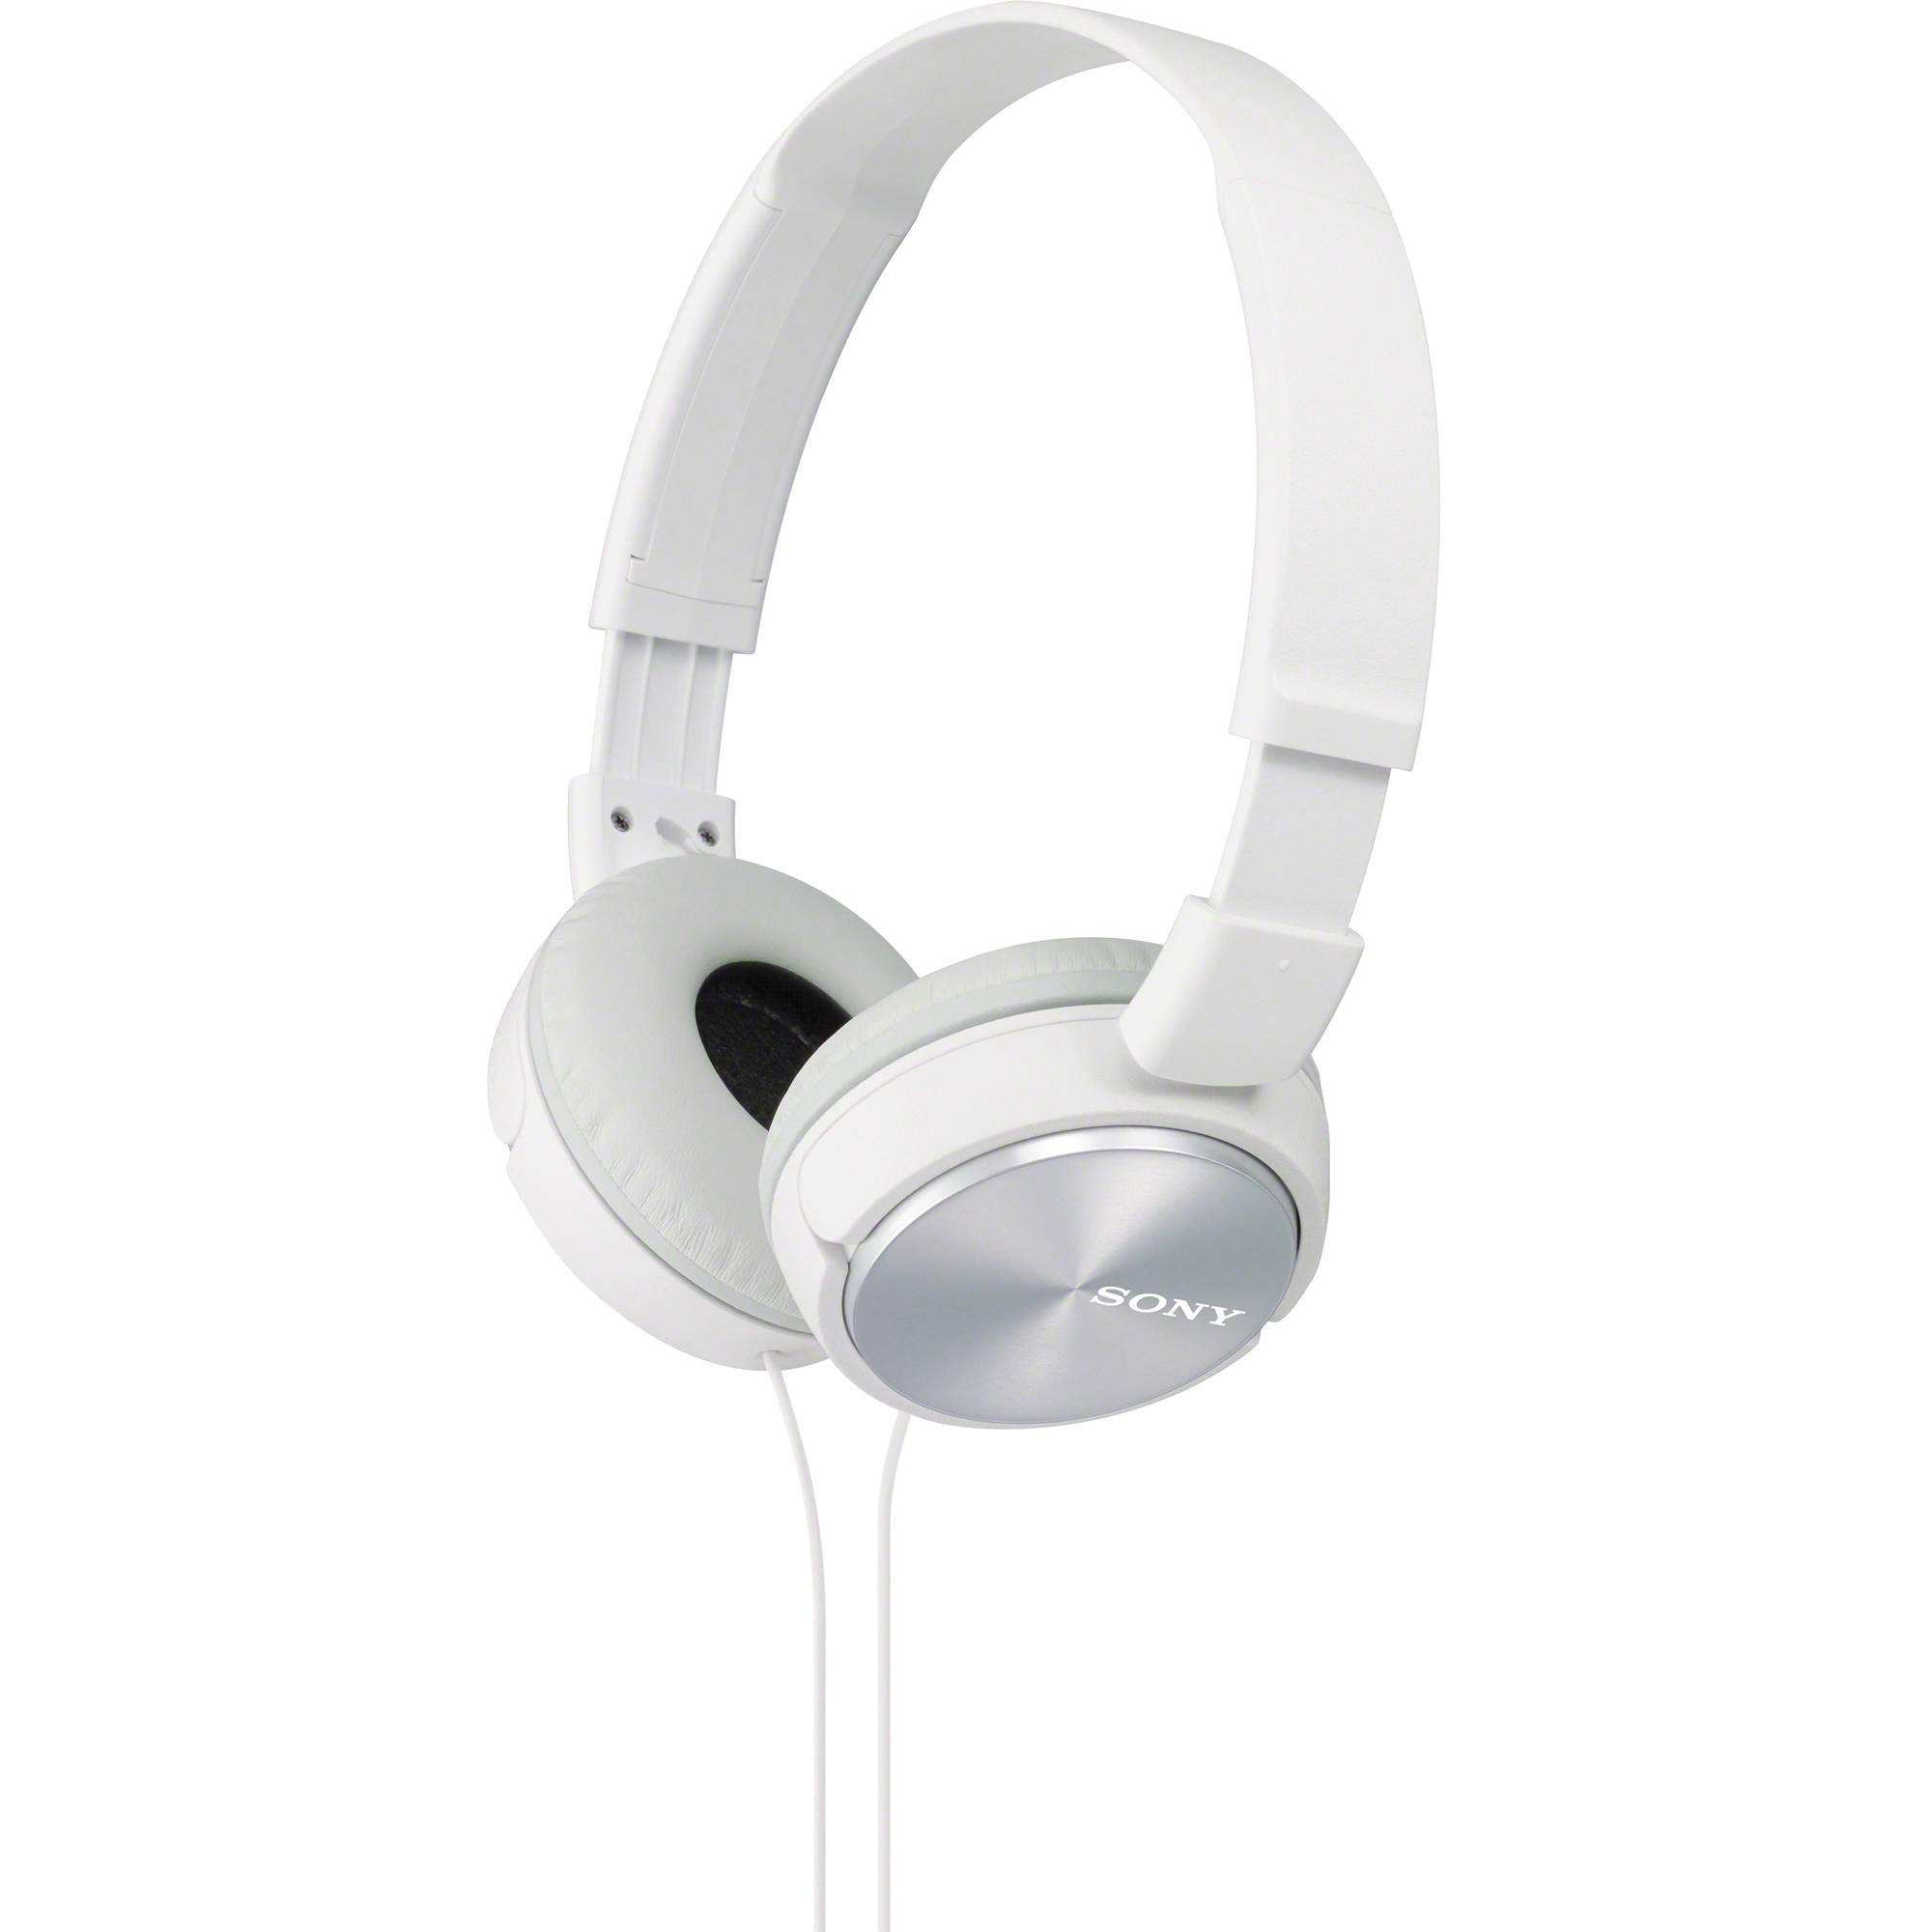 Sony Mdr Zx310 On Ear Headphones White Mdrzx310wh B Amp H Photo